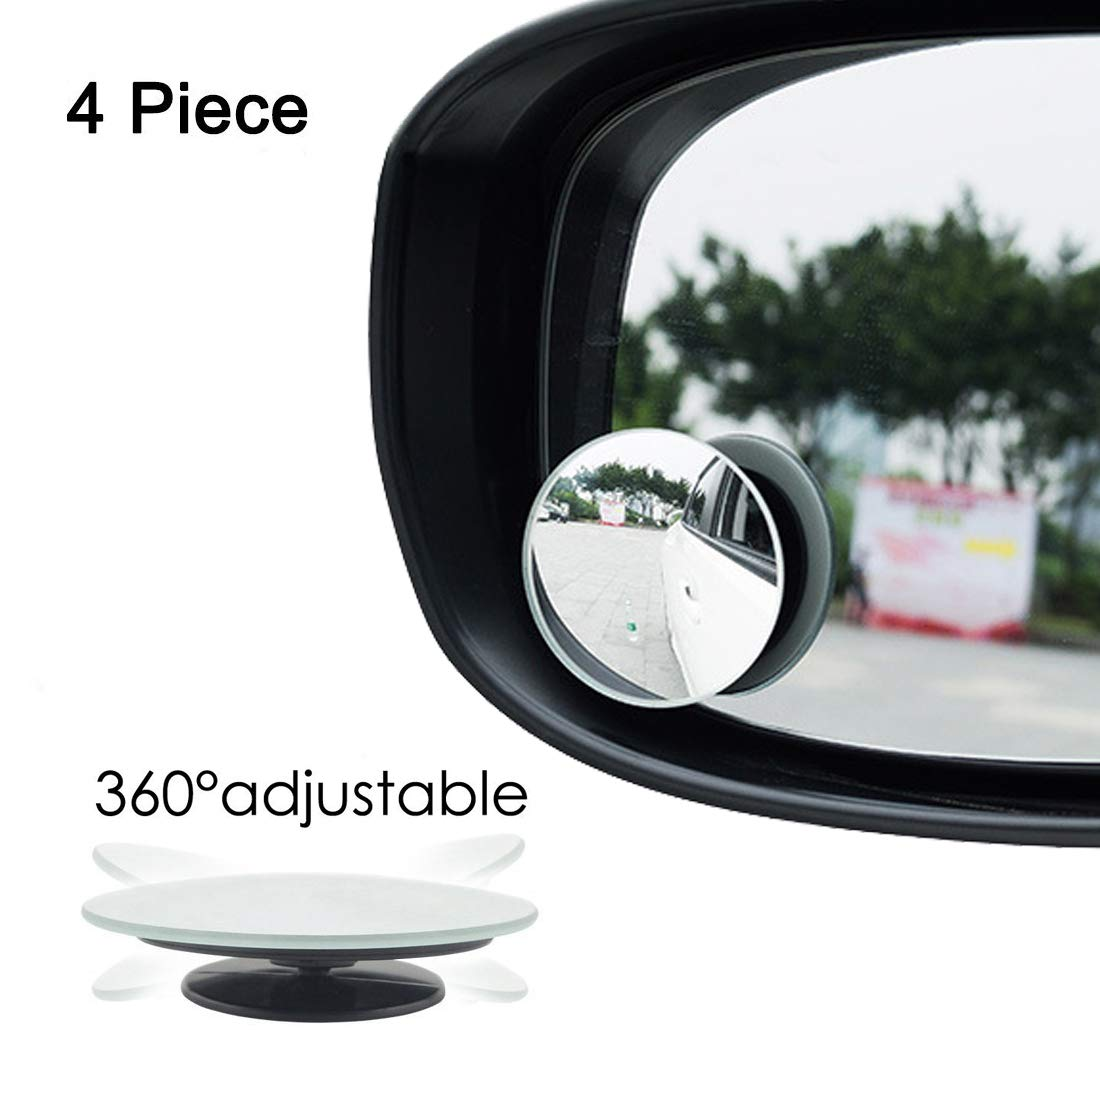 2 PACK 2' Convex Blind Spot Mirrors Wide Angle Rear View 360° Rotate + 30° Sway Adjustabe Car SUV Stick On Lens Busy